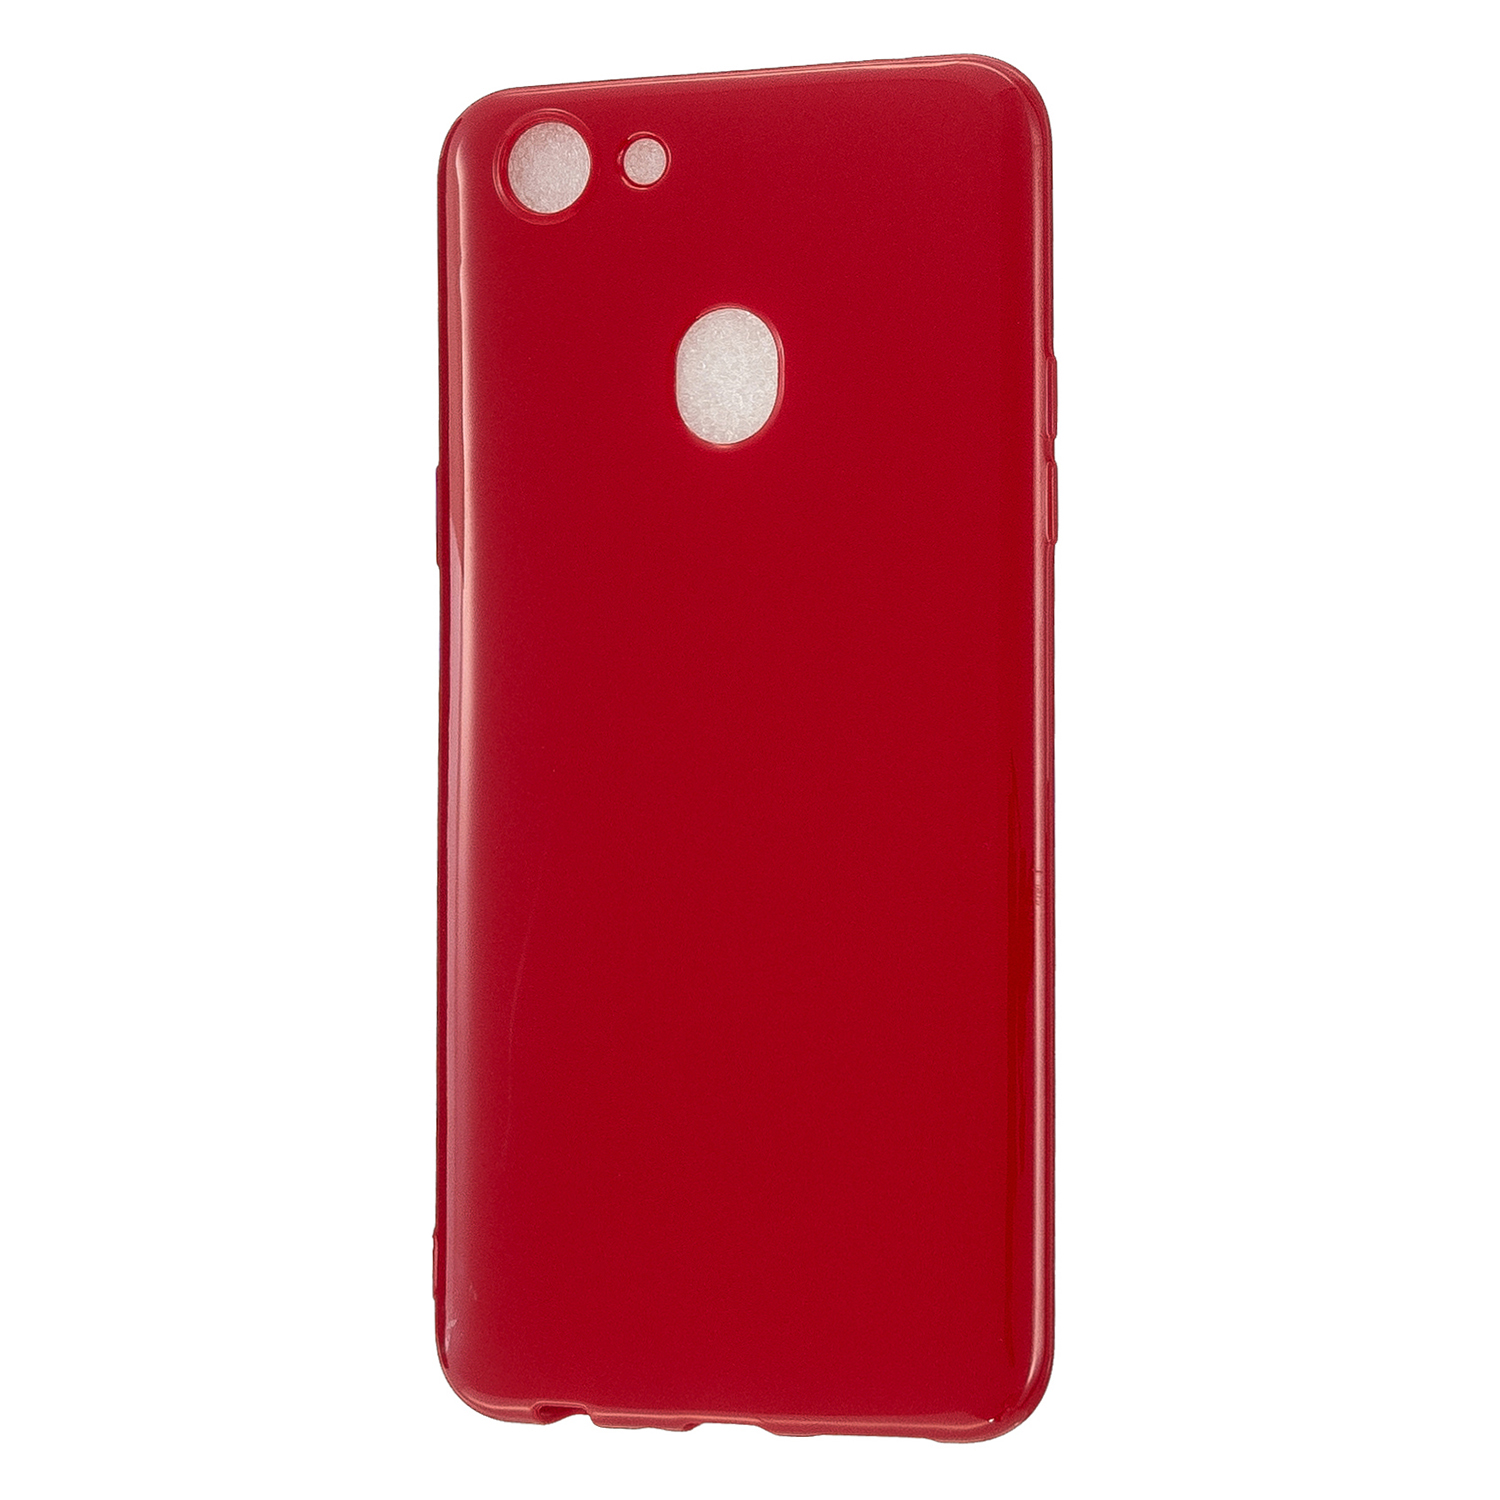 For OPPO F5/F7 Cellphone Cover Soft TPU Mobile Phone Case Screen Protector with Shock Absorption Technology Rose red